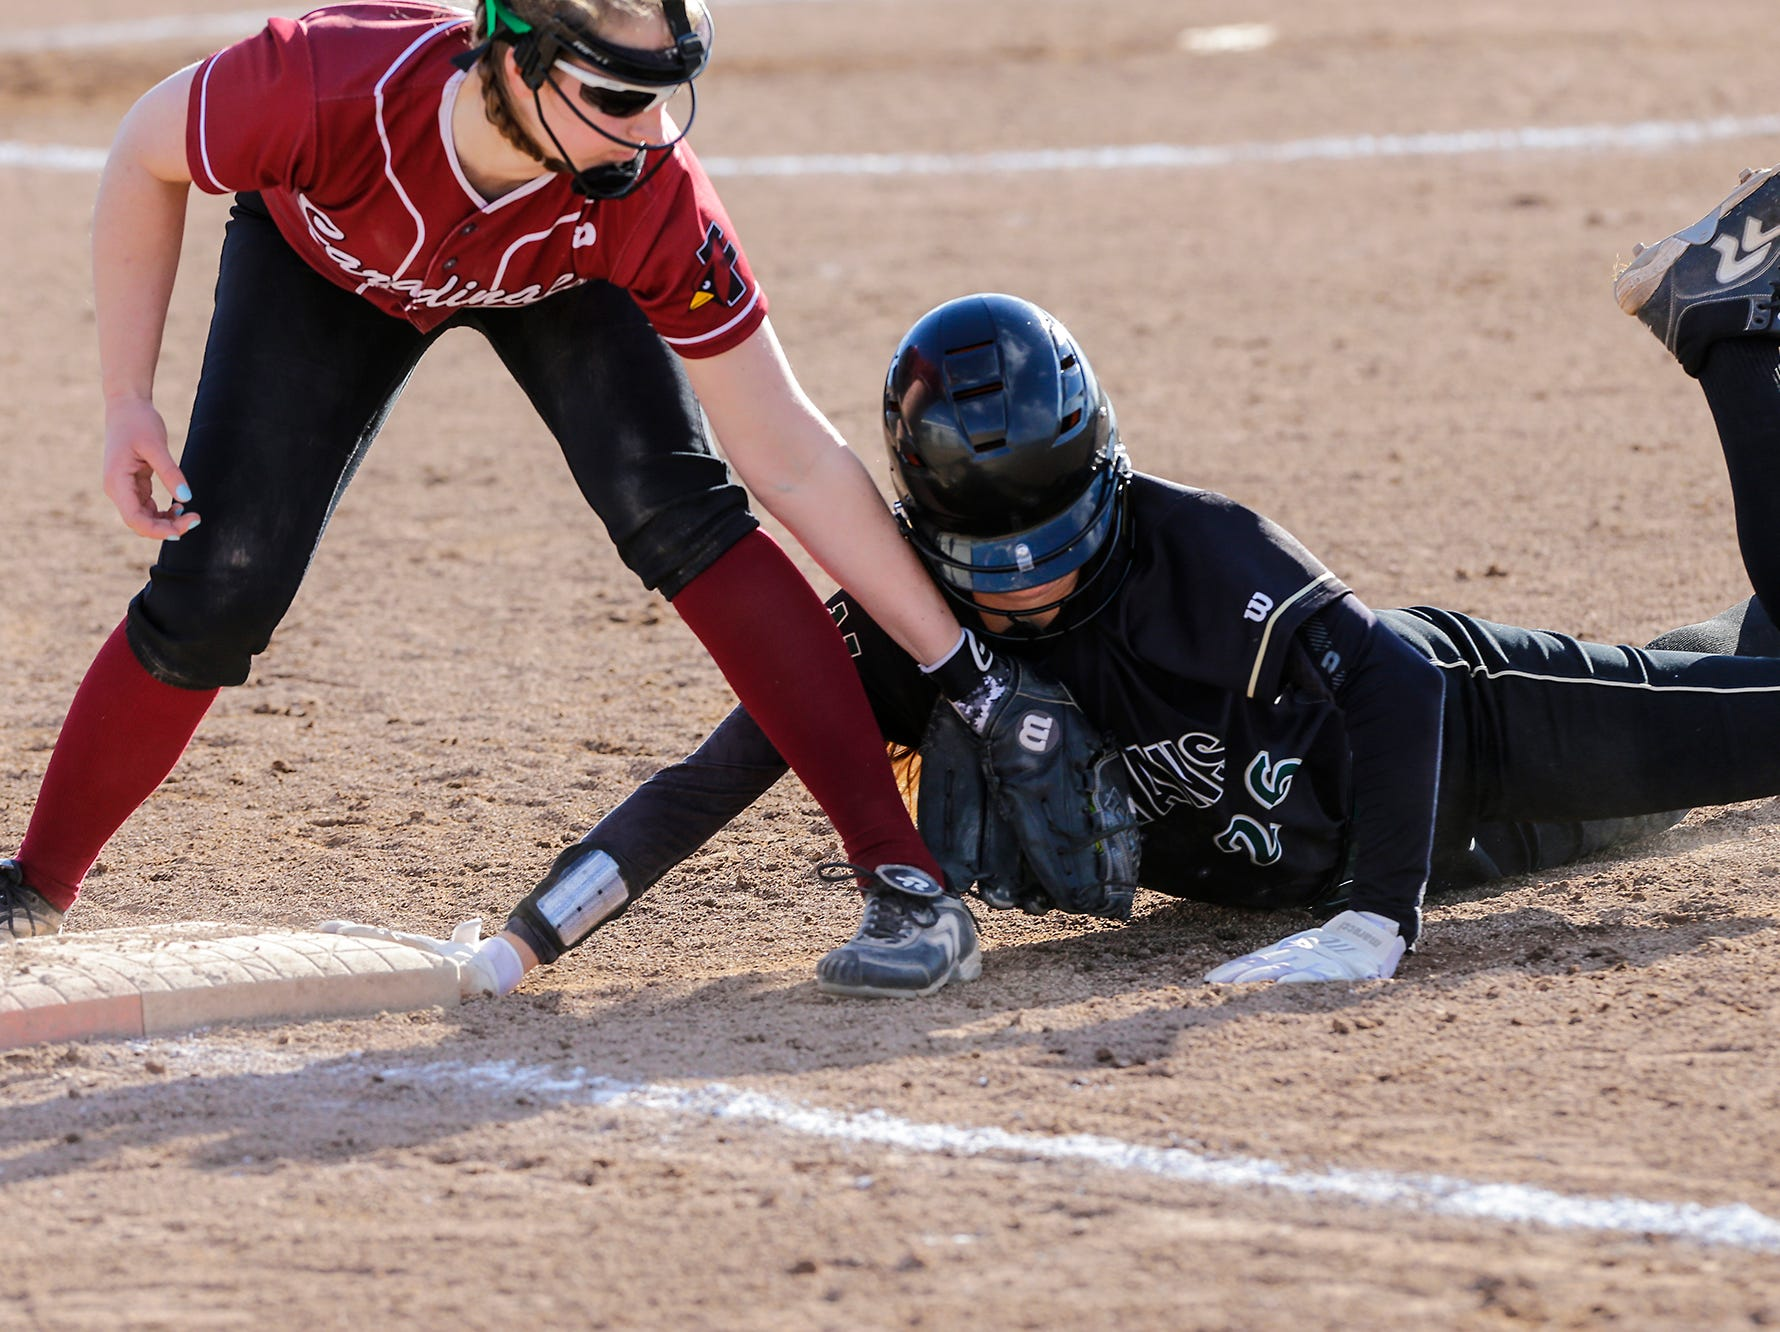 Fond du Lac High School softball's Kellie Hierl (5) attempts to tag Oshkosh North High School's Syd Supple (26) as she dives back to first base during their game Friday, April 26, 2019 in Fond du Lac, Wis. Doug Raflik/USA TODAY NETWORK-Wisconsin